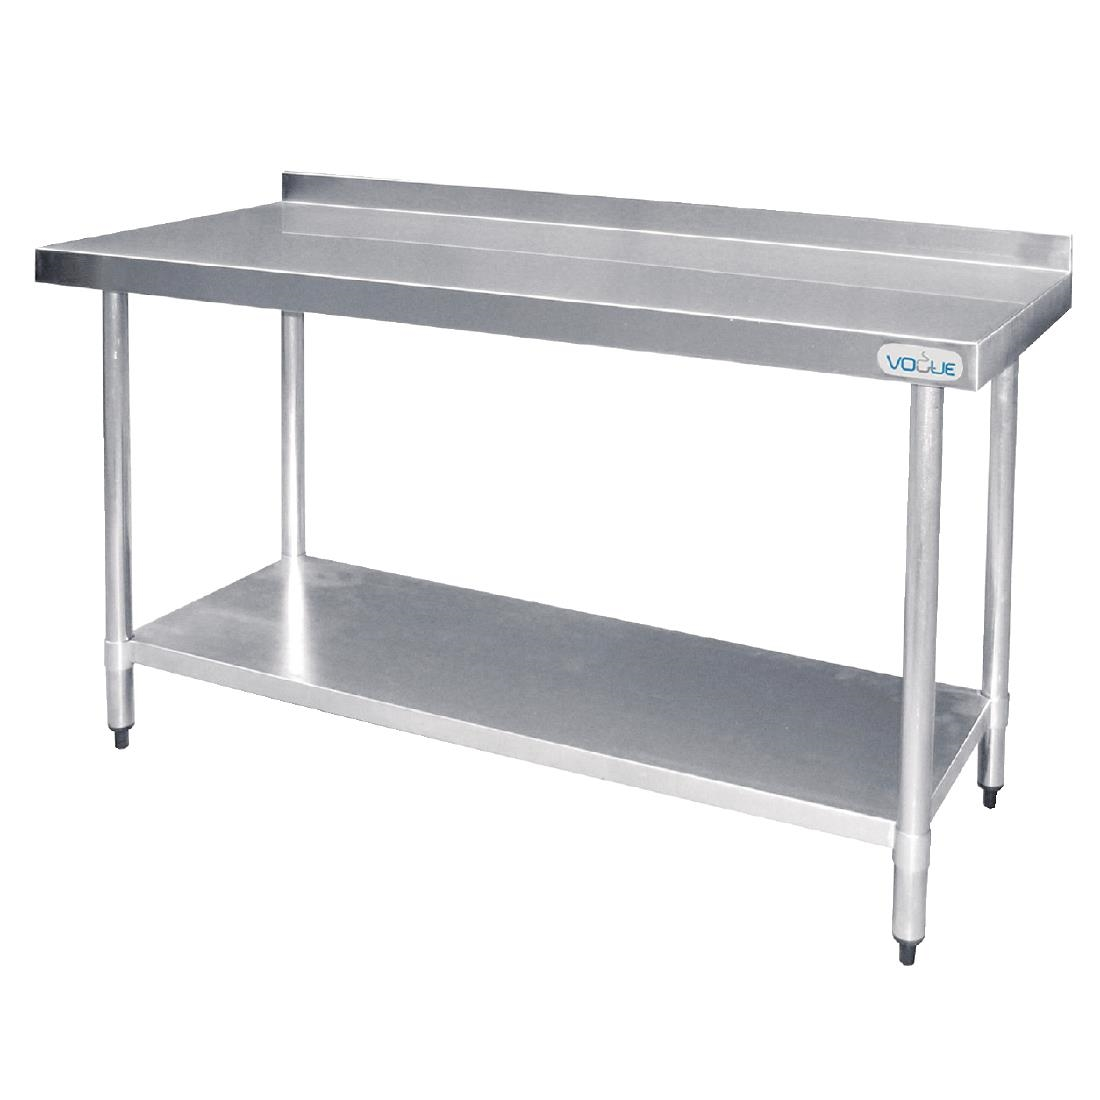 Vogue Stainless Steel Table With Upstand Dmm PT Buy - Stainless steel prep table with shelves